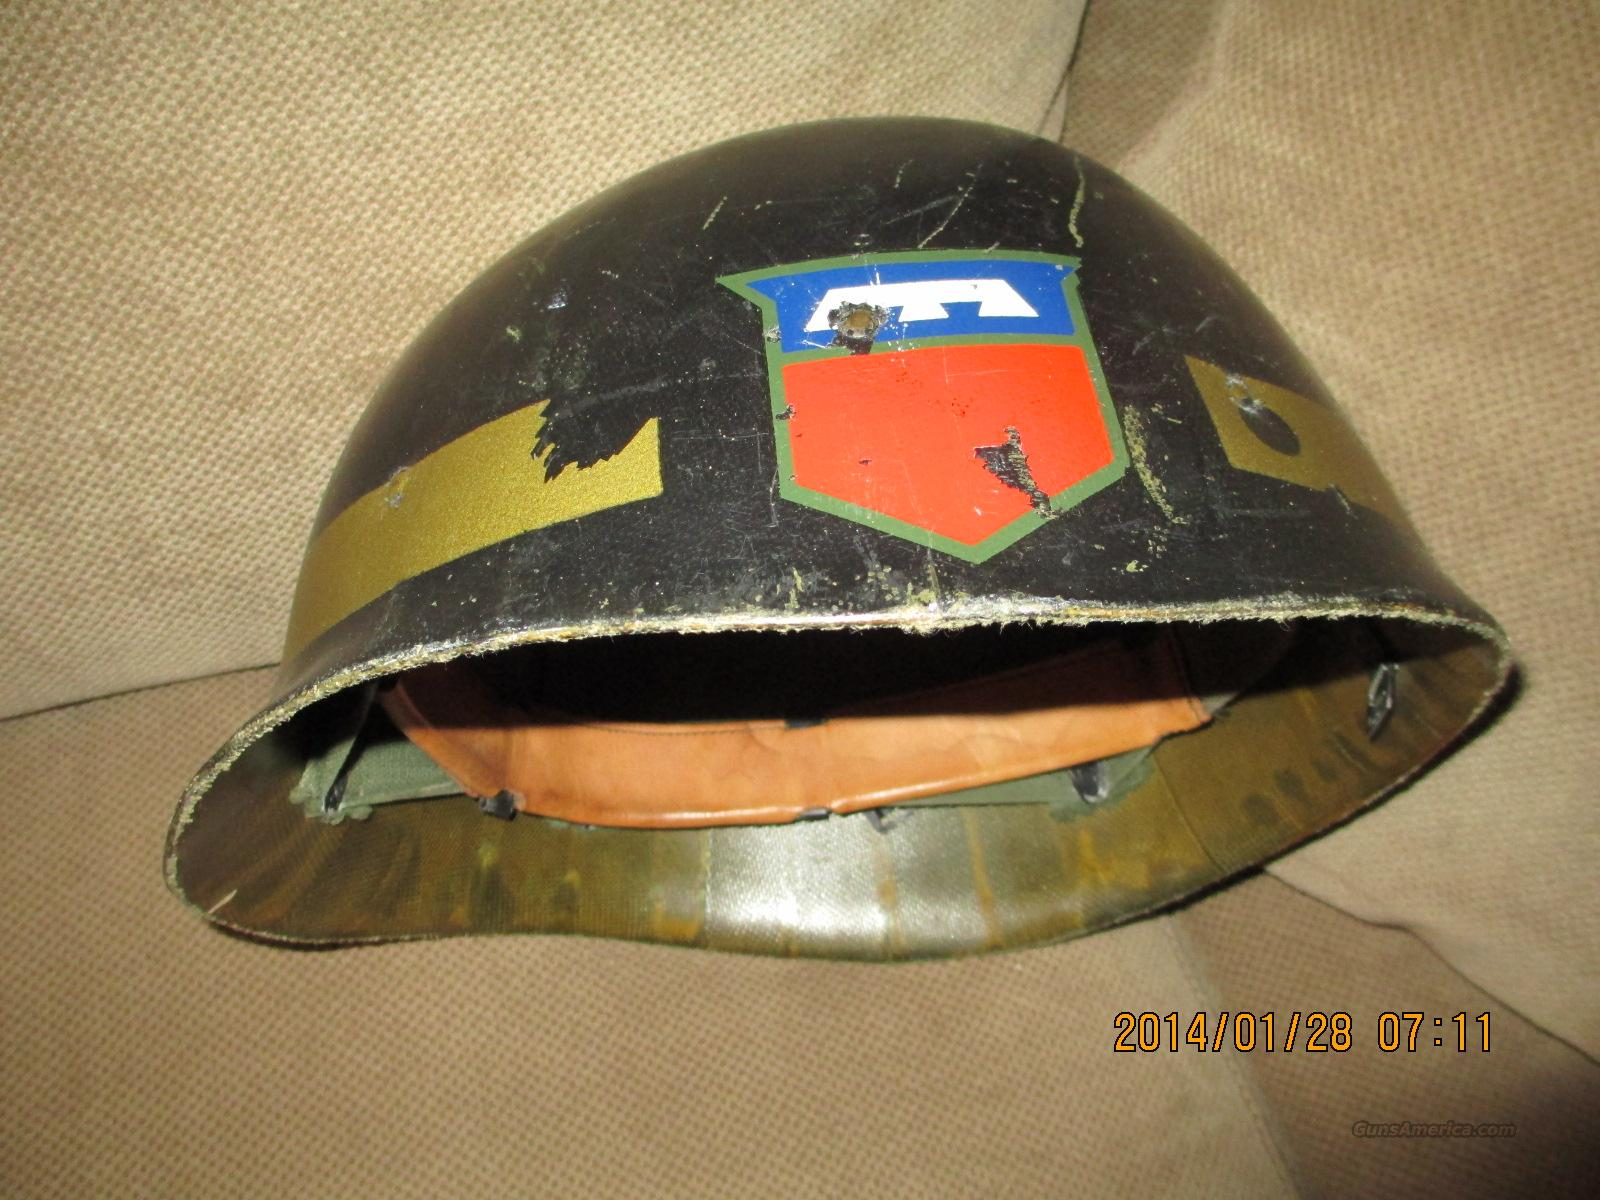 CIVIL  Defence HELMET LINER ARMY'S 76 DIVISION  Non-Guns > Military > Memorabilia